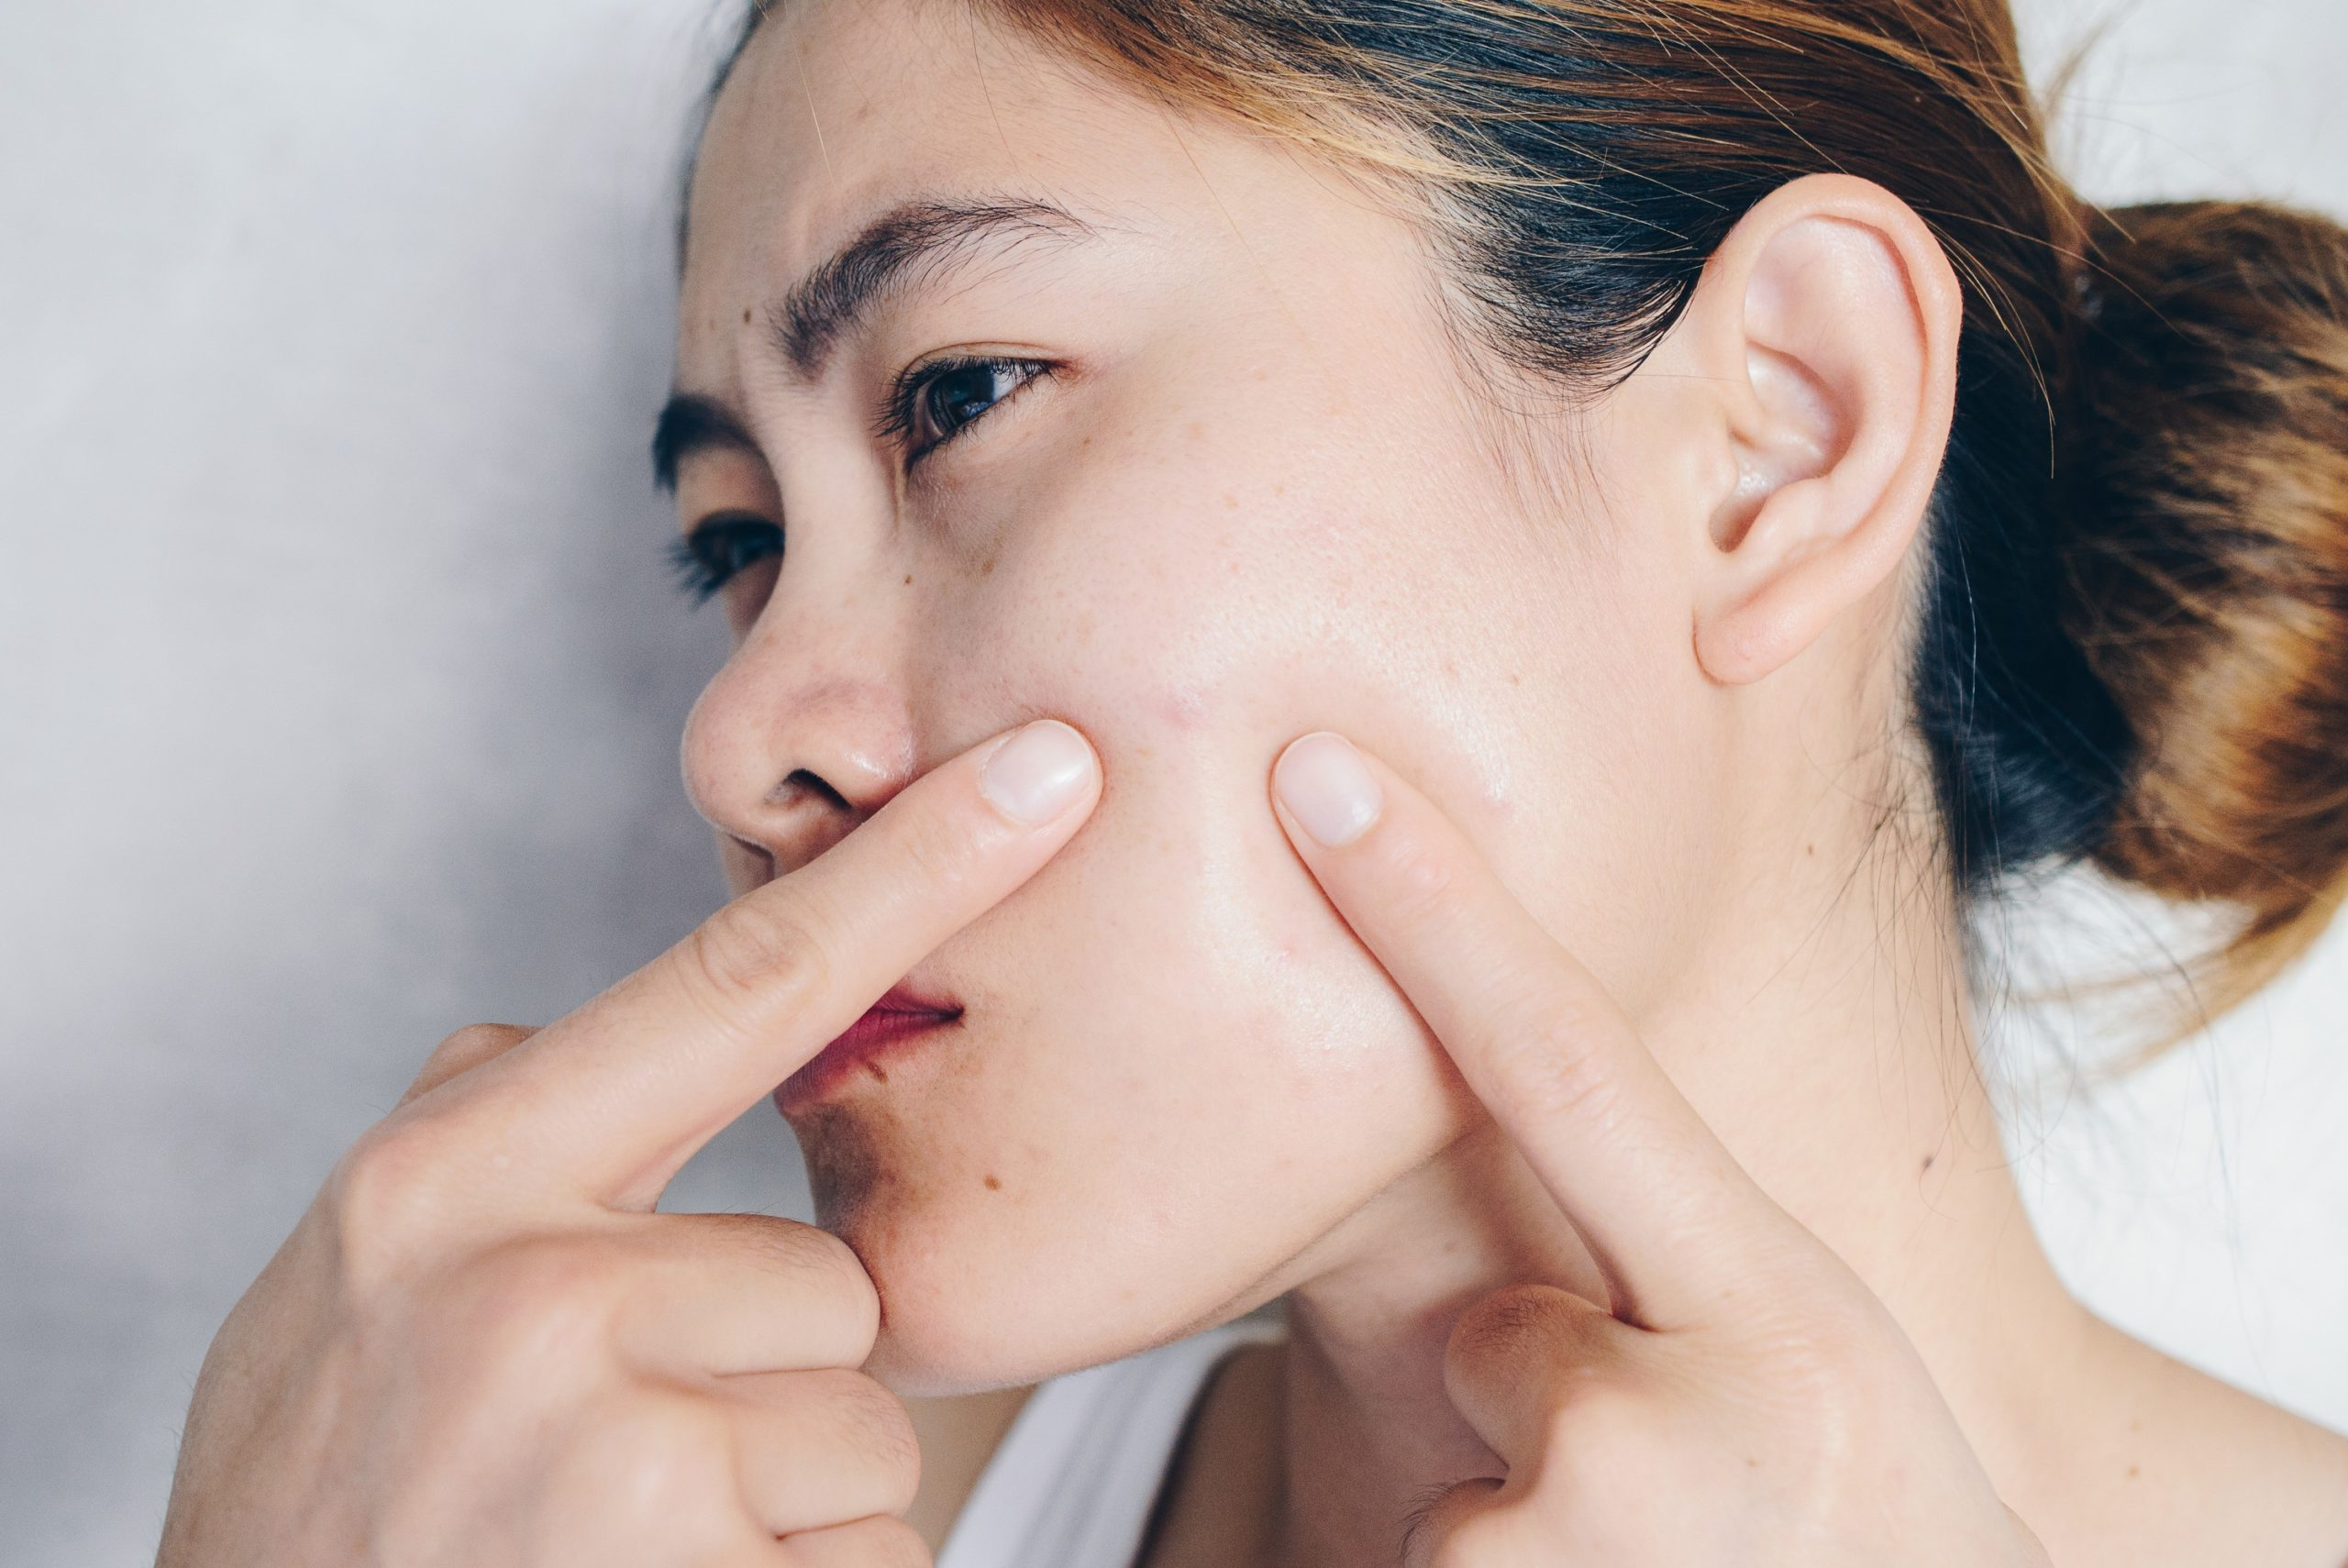 Acne Treatment in Lahore | Laser Treatment For Acne | Dr. Sana Younas